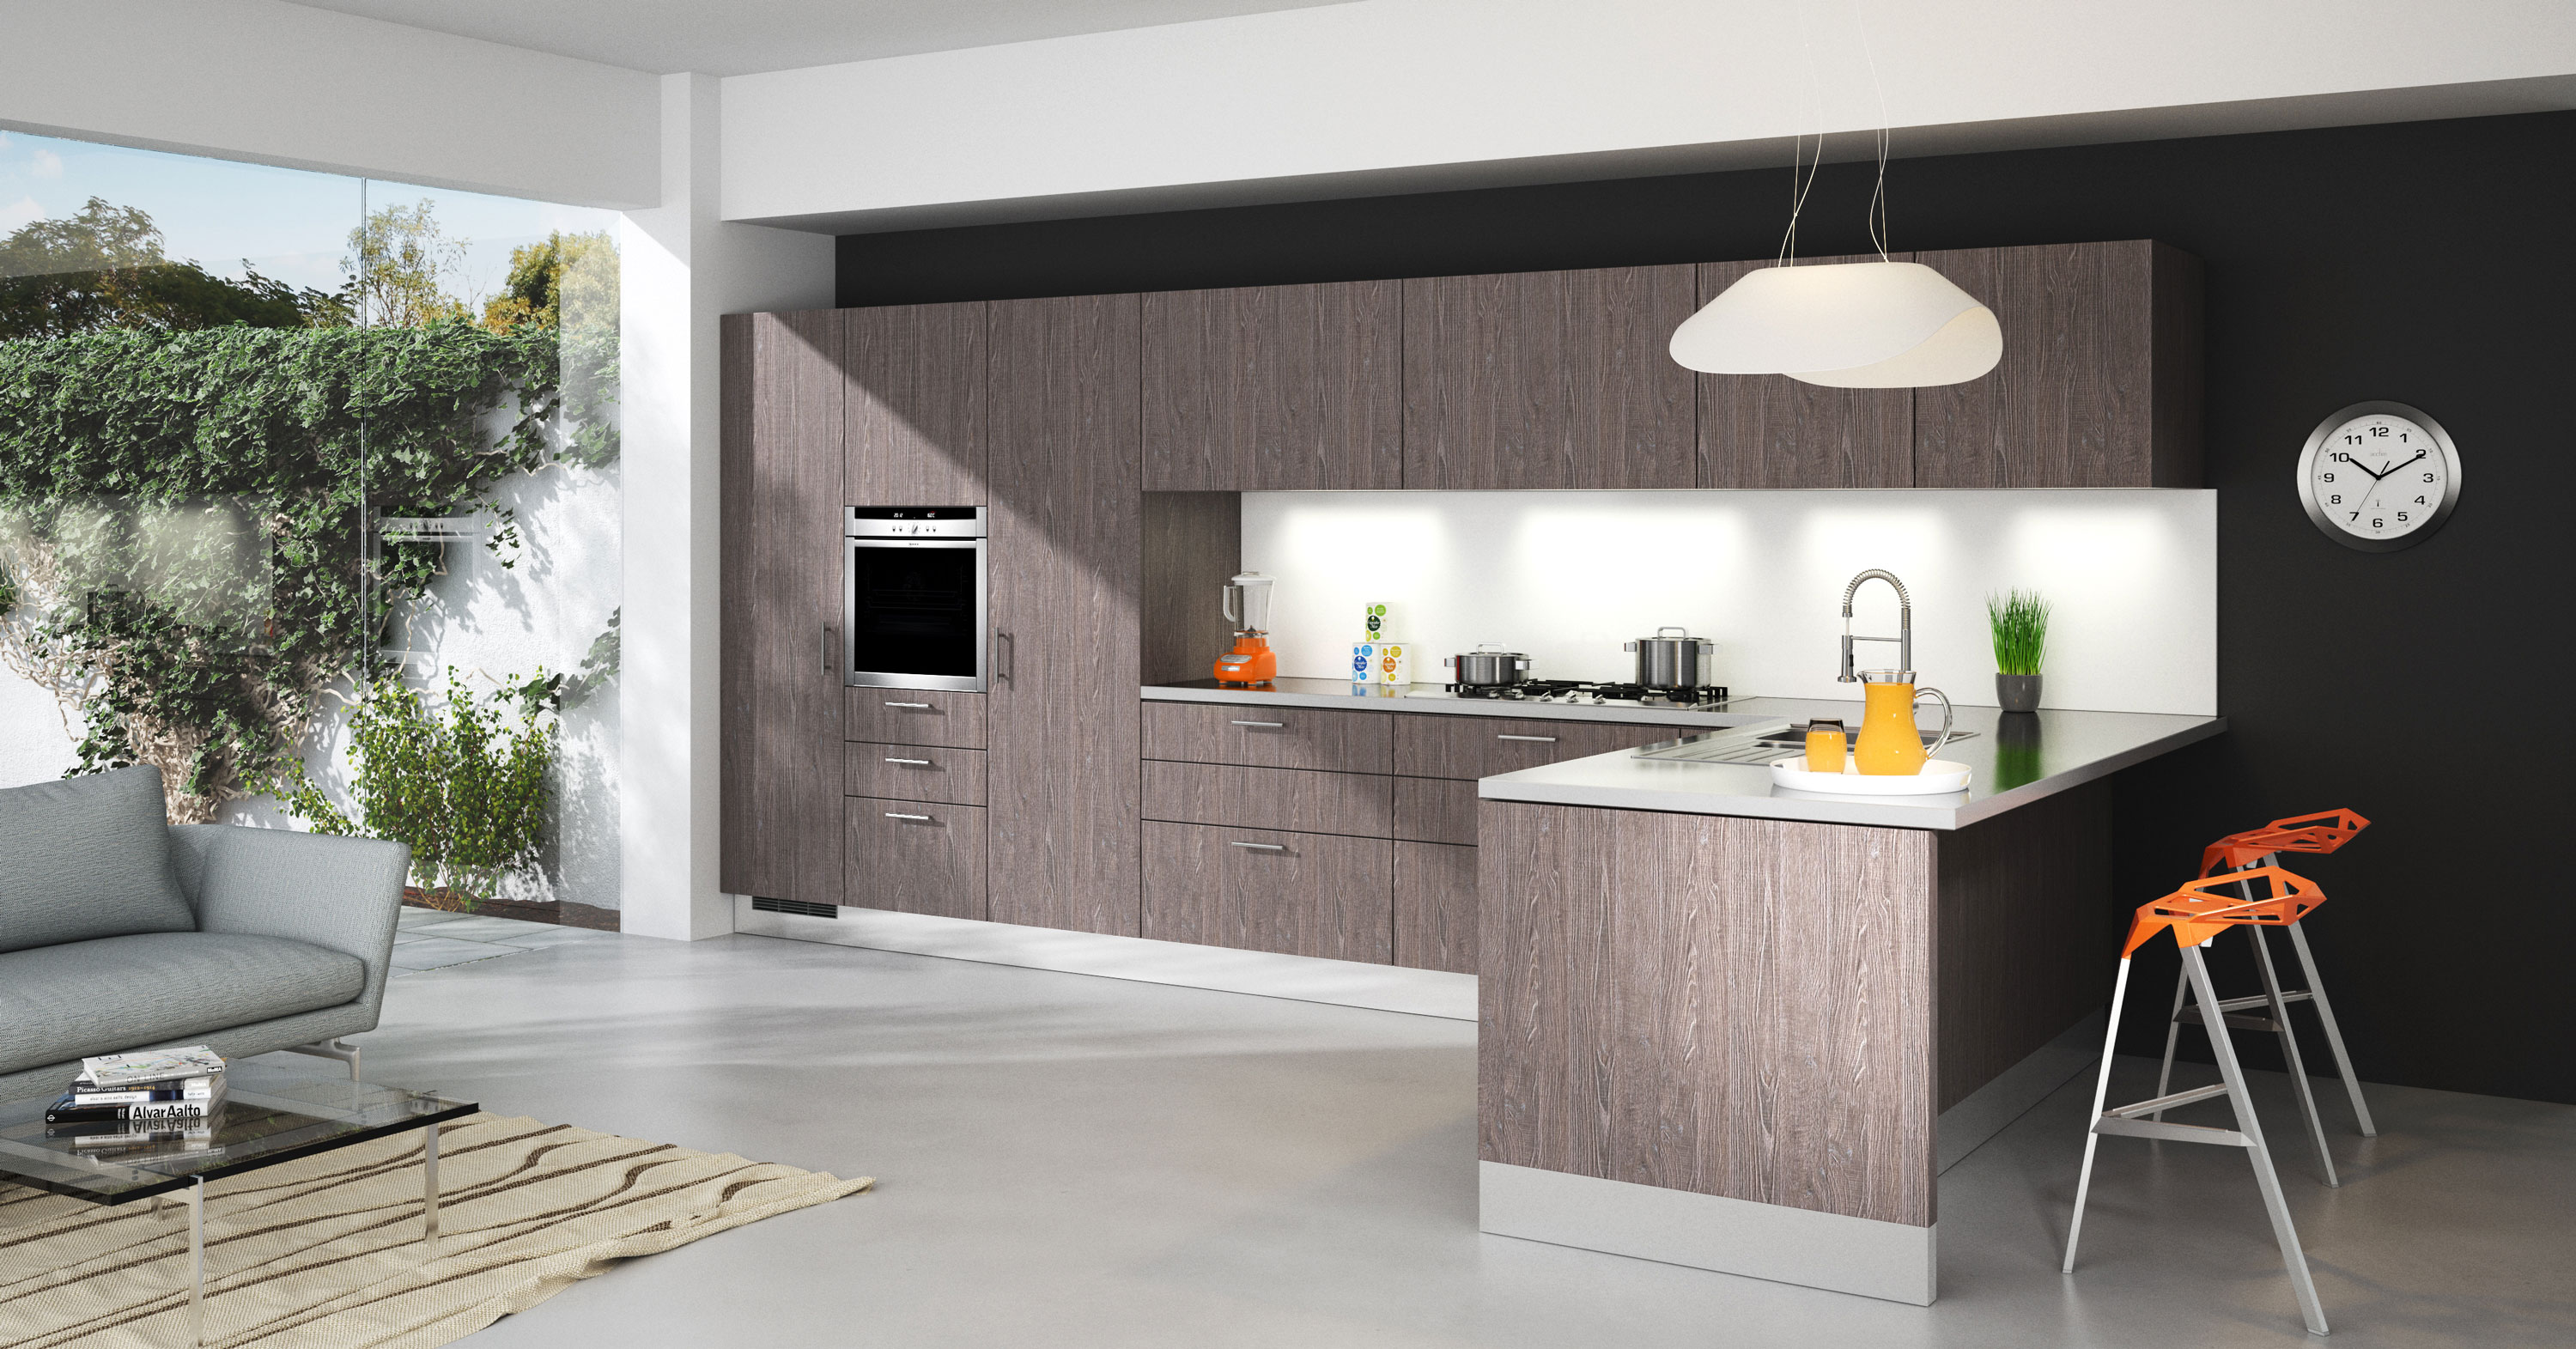 European Kitchen Cabinets Brooklyn Ny Dna Kitchen Showroom Brooklyn Kitchen Remodeling